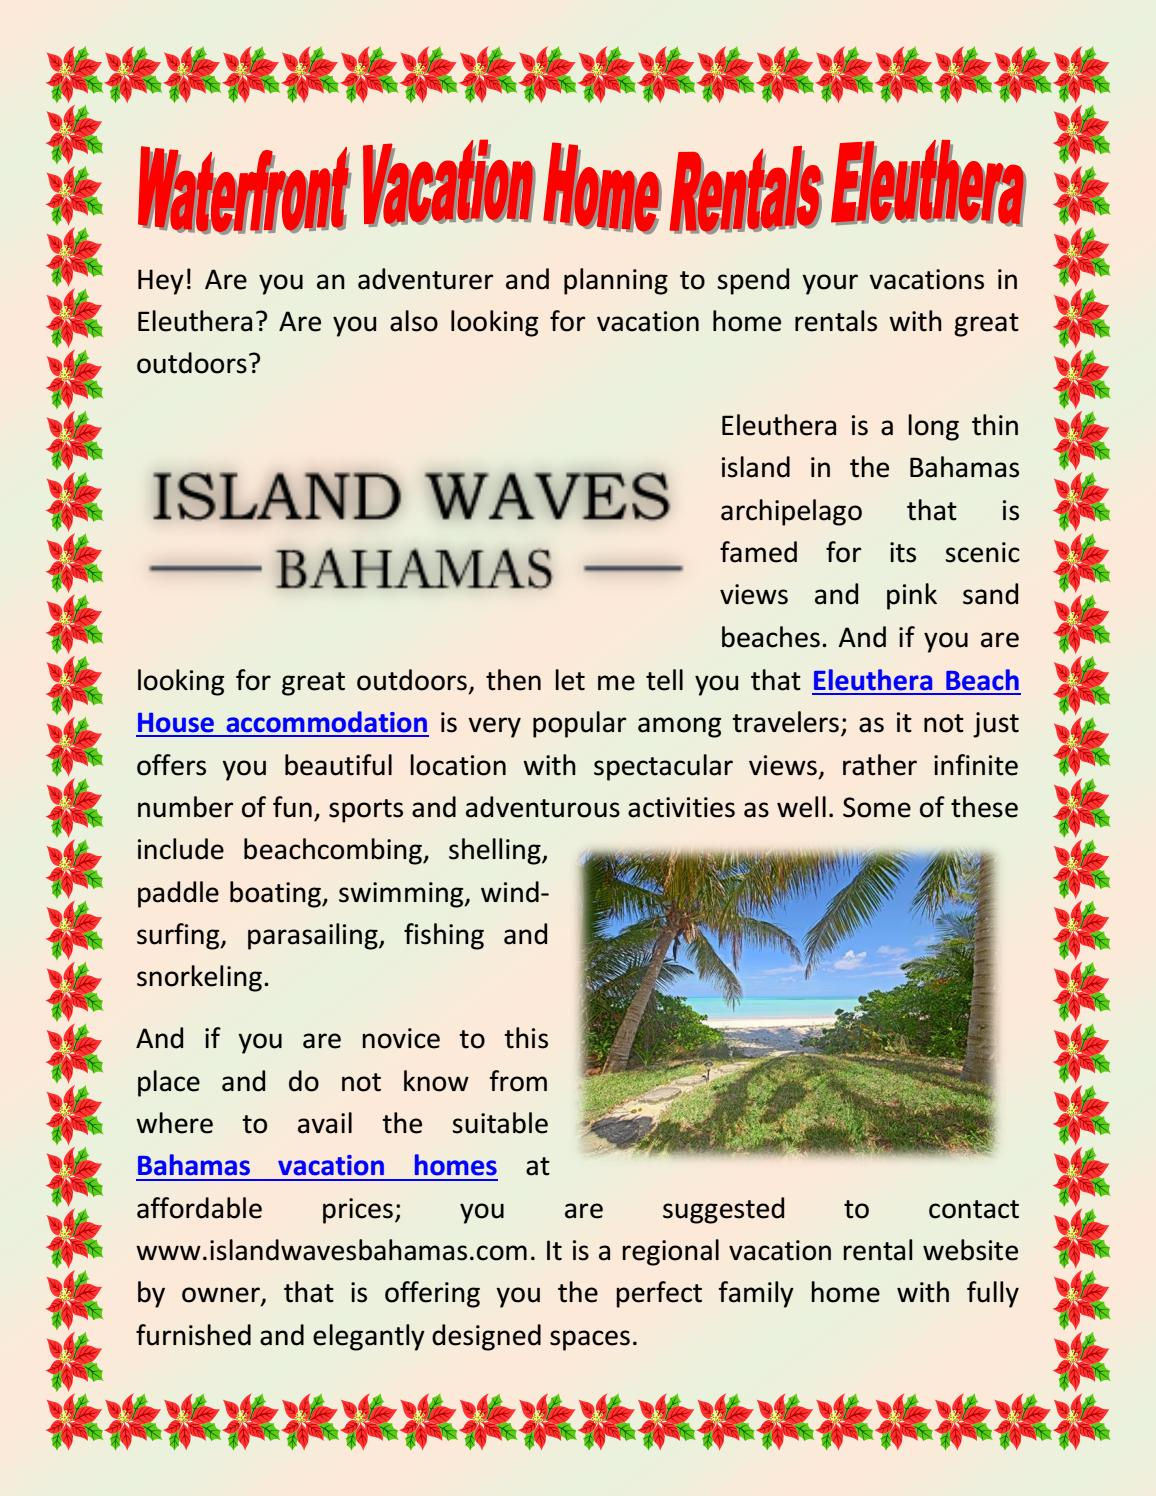 Waterfront Vacation home rentals Eleuthera